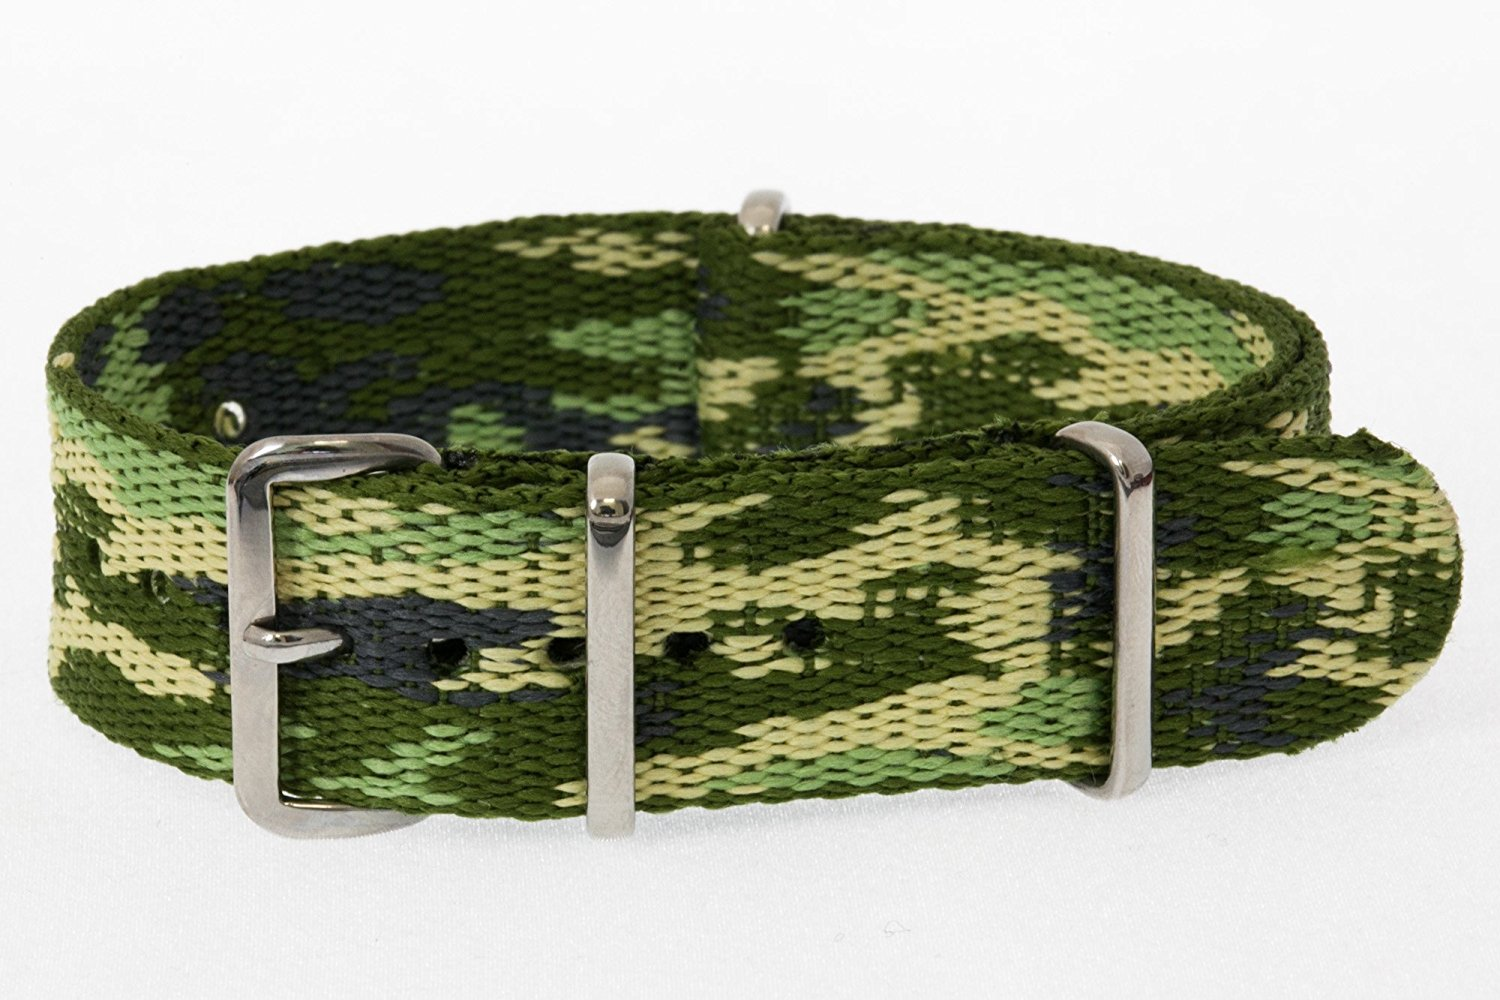 a069e307e1a Get Quotations · 20mm   Camouflage   James Bond Nylon Nato Watch Band  Military Strap G10